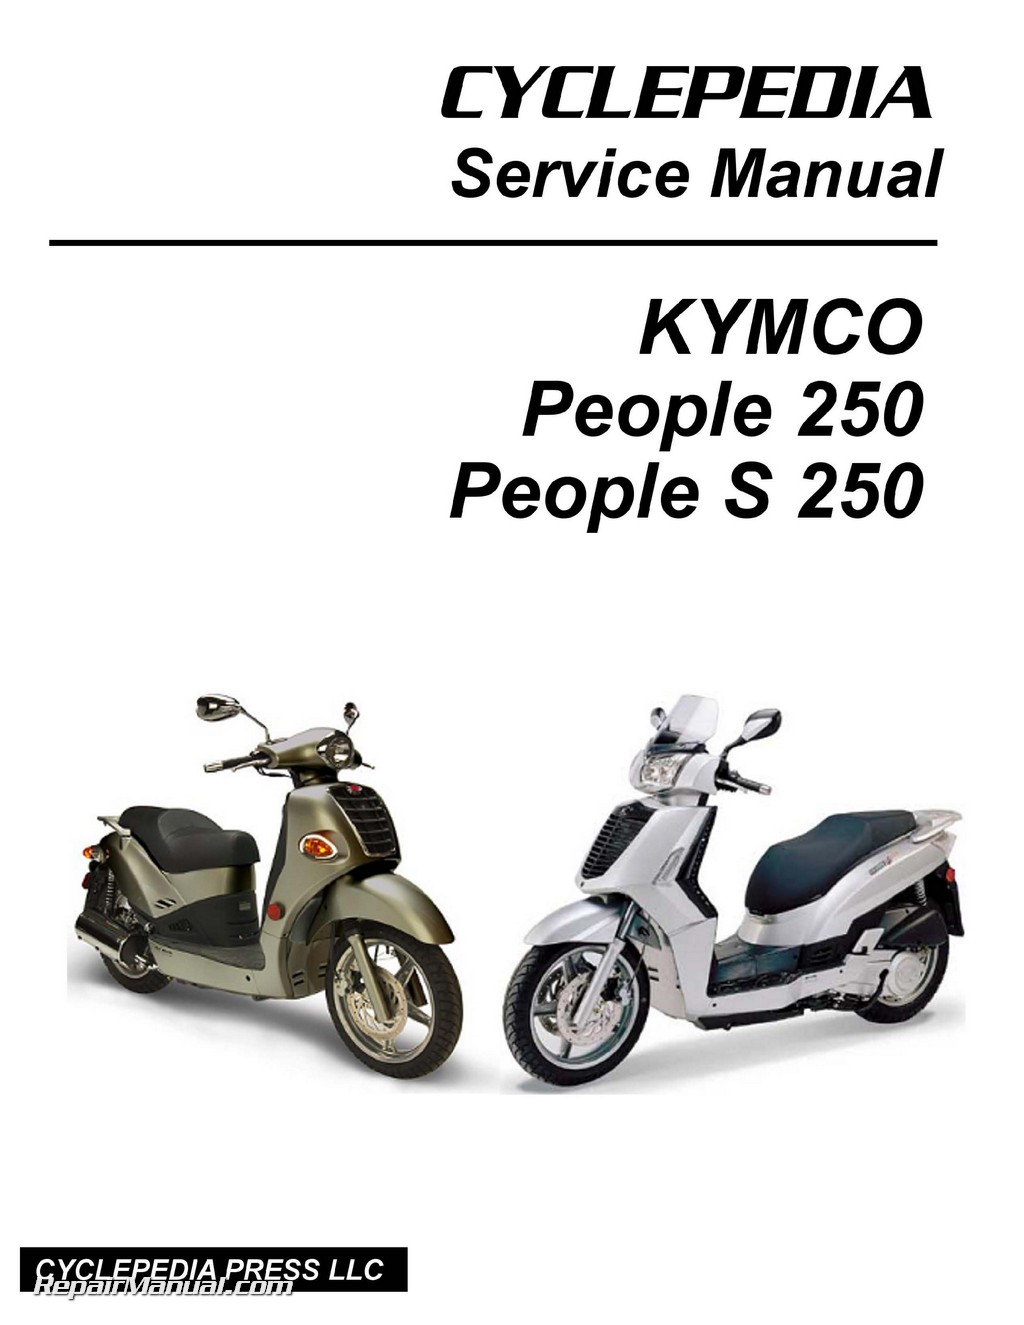 kymco people s 250 parts catalogue